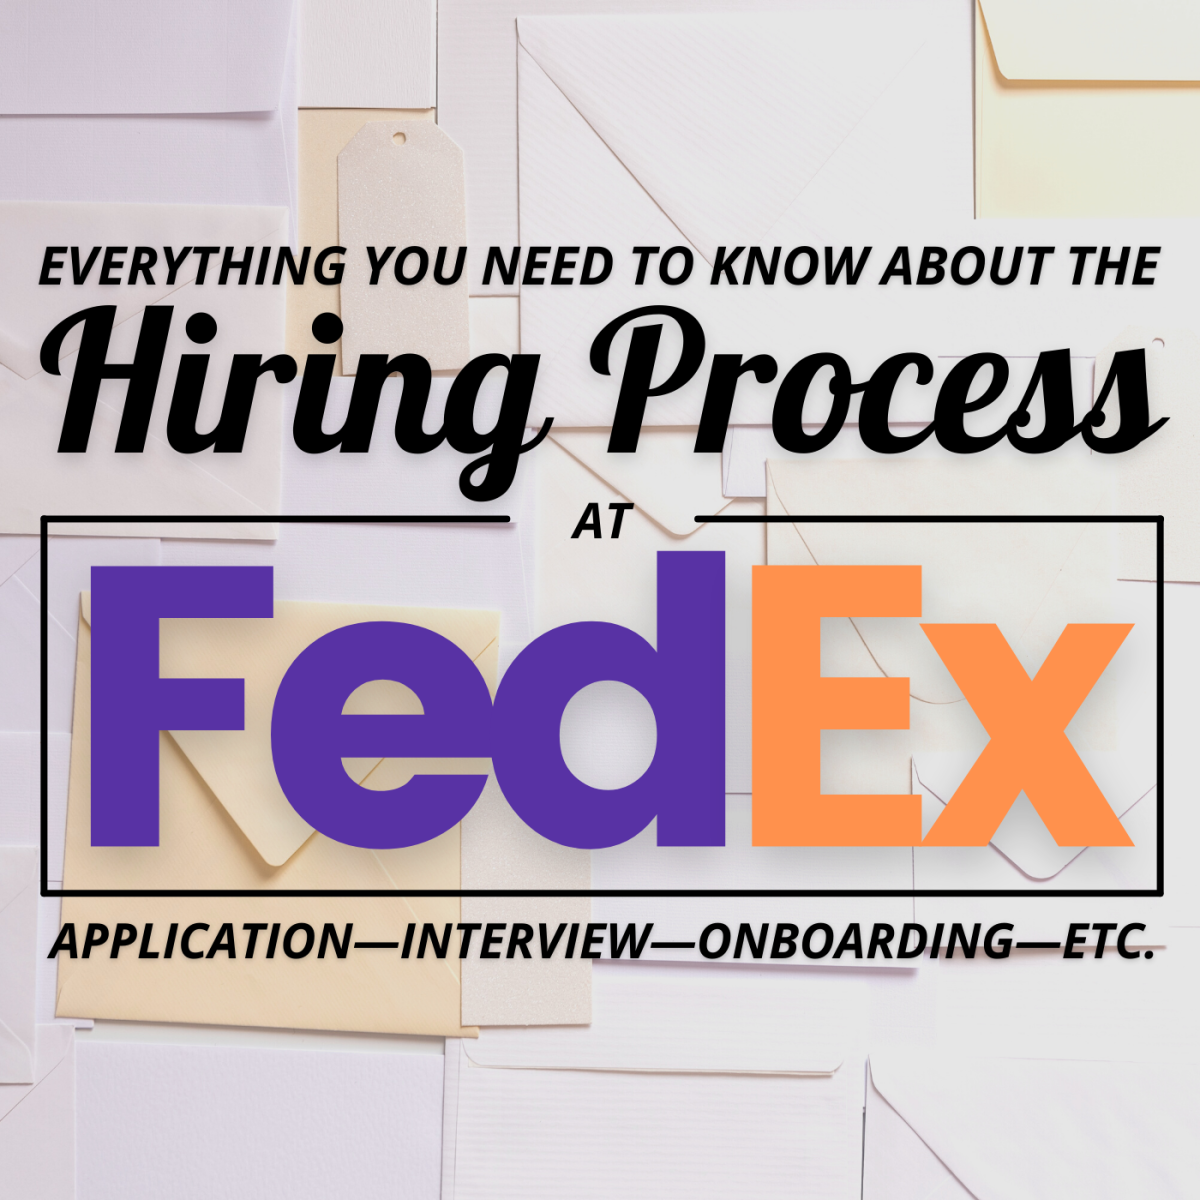 Thinking about getting a job at FedEx? Here's how the application process works.